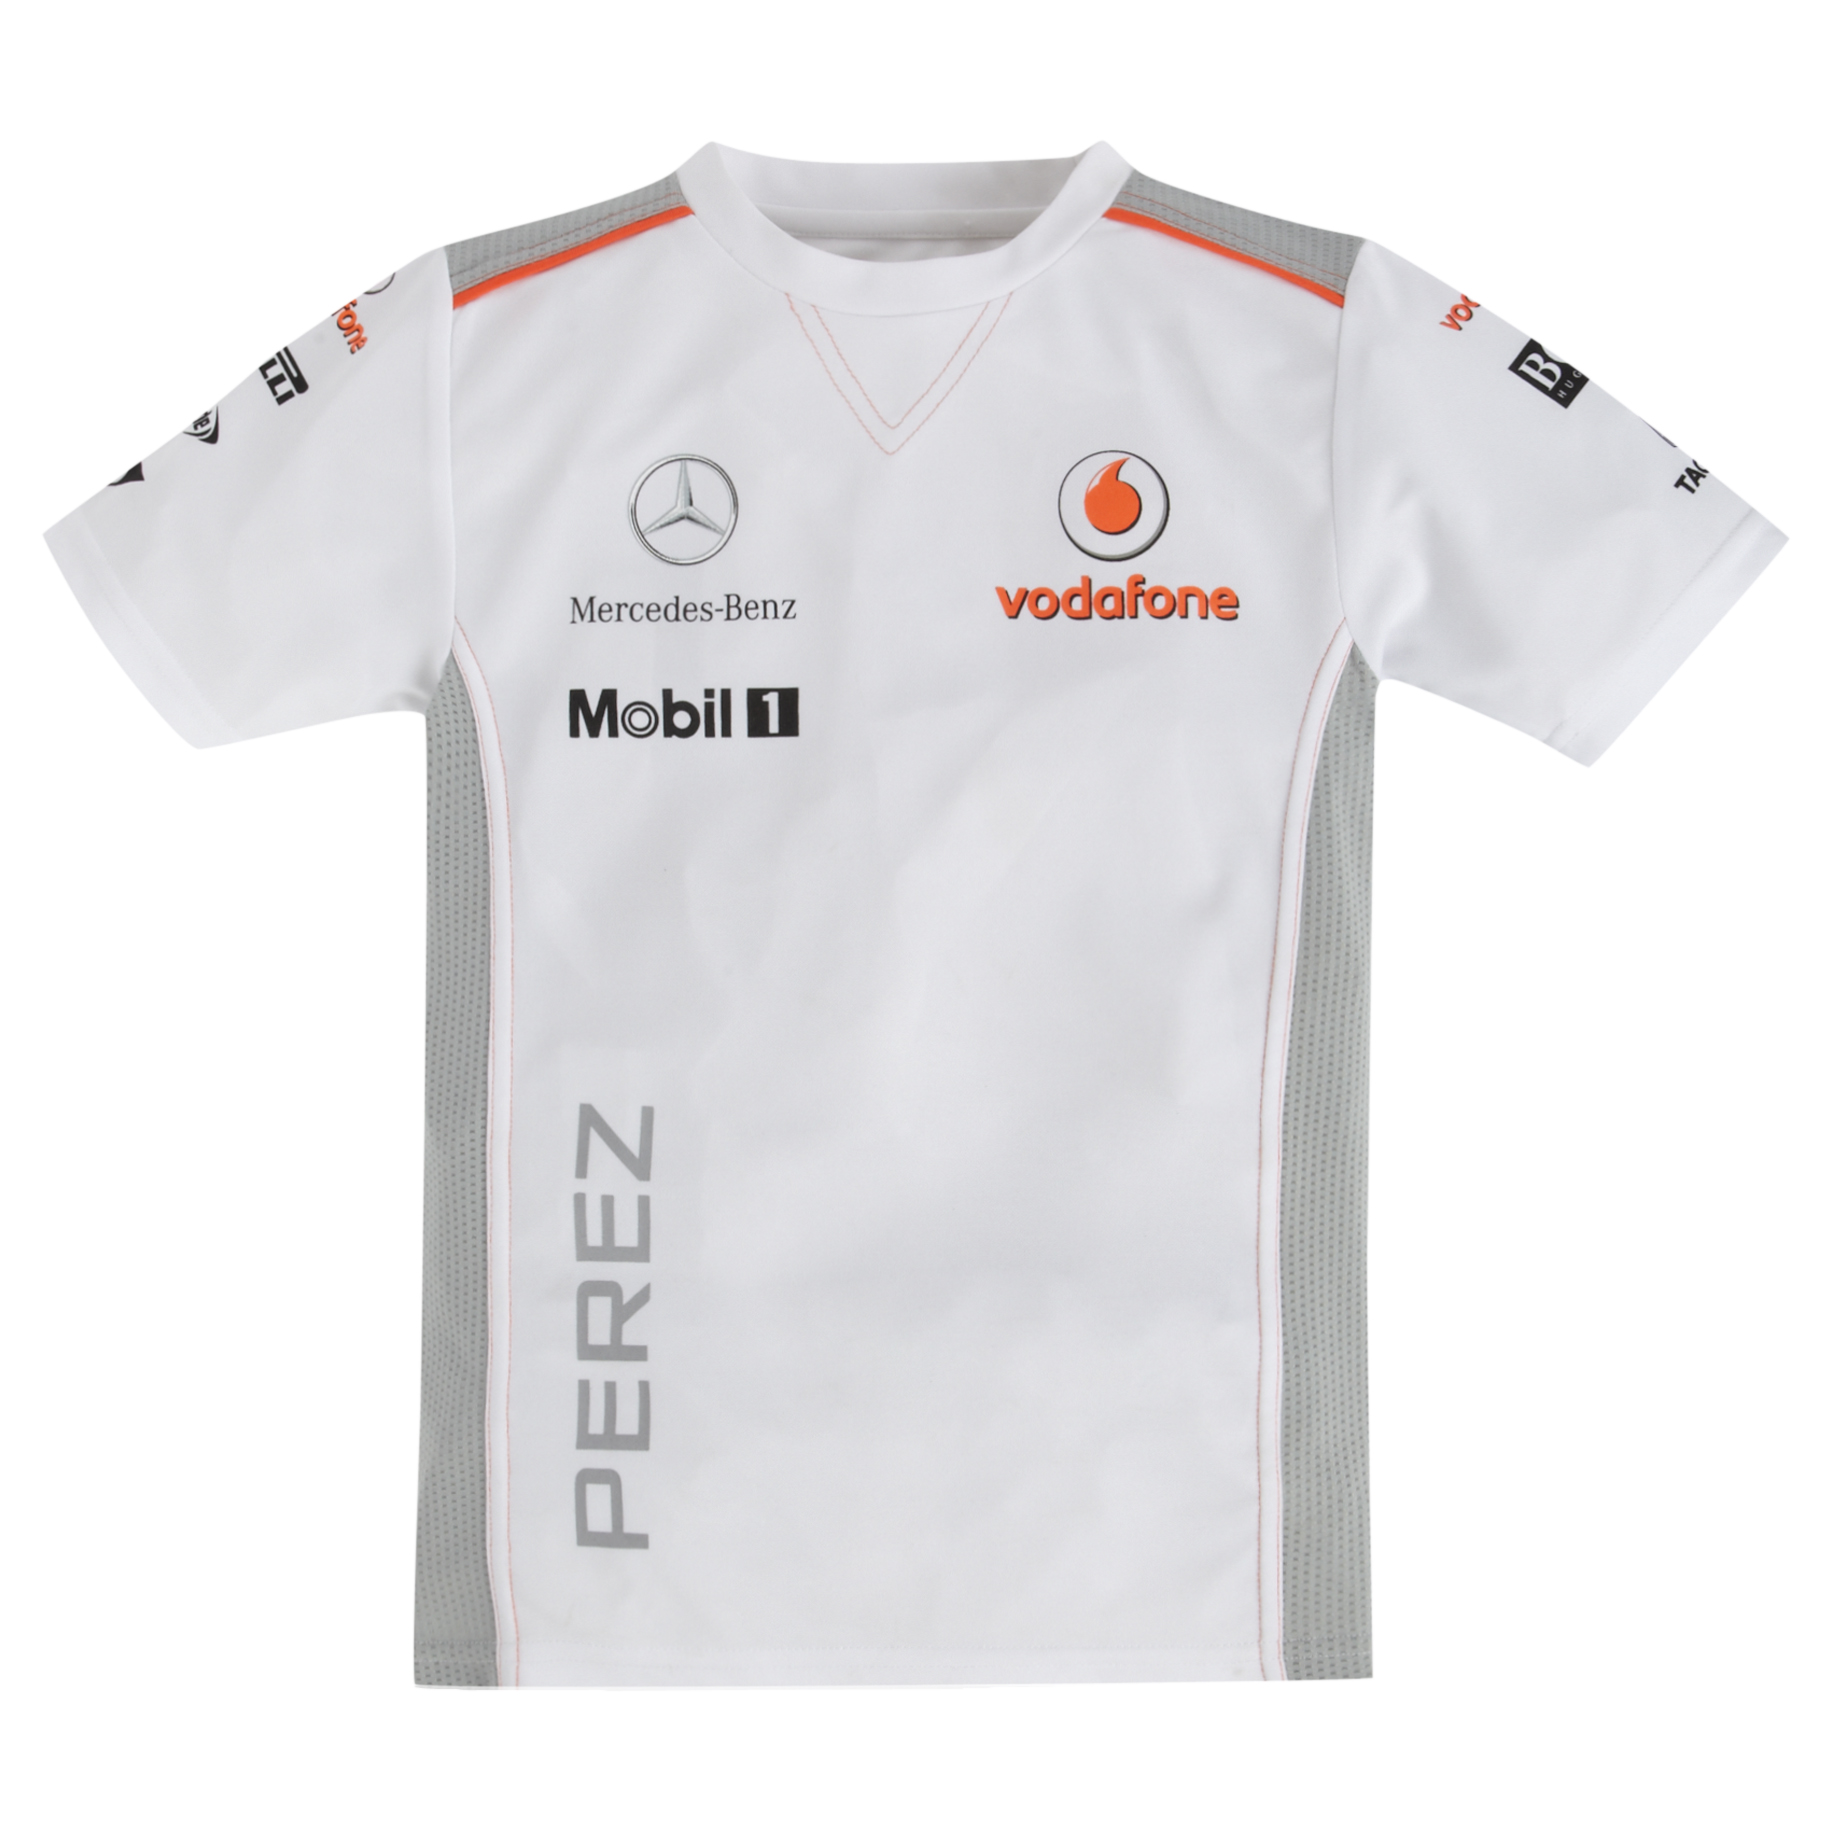 Vodafone McLaren Mercedes 2013 Perez T-Shirt - Kids